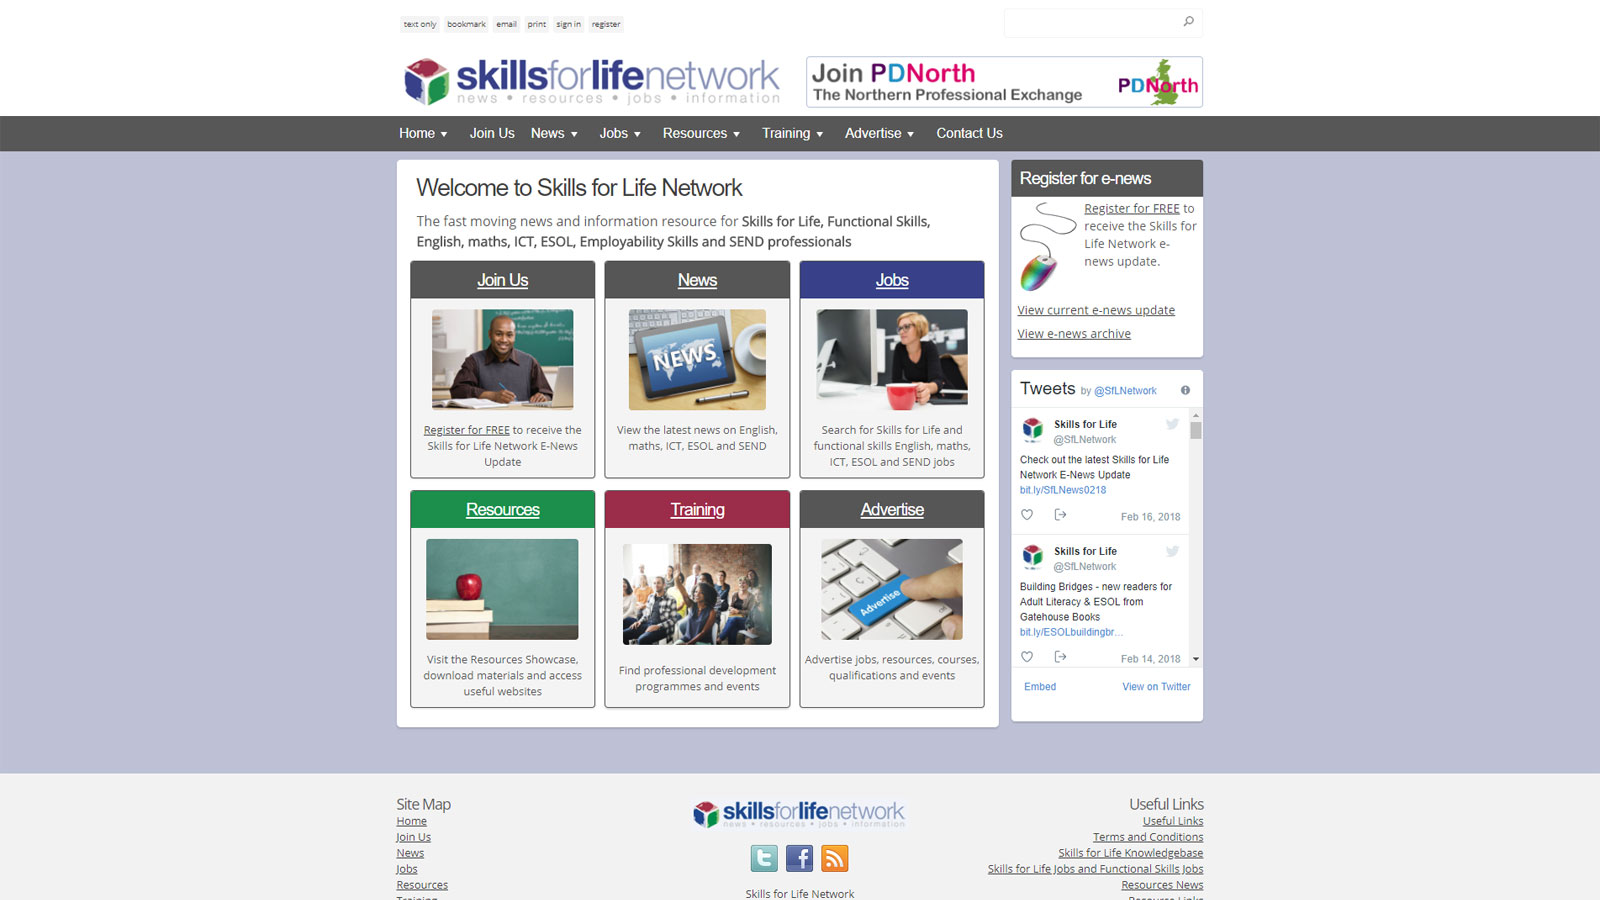 Skills for life Network